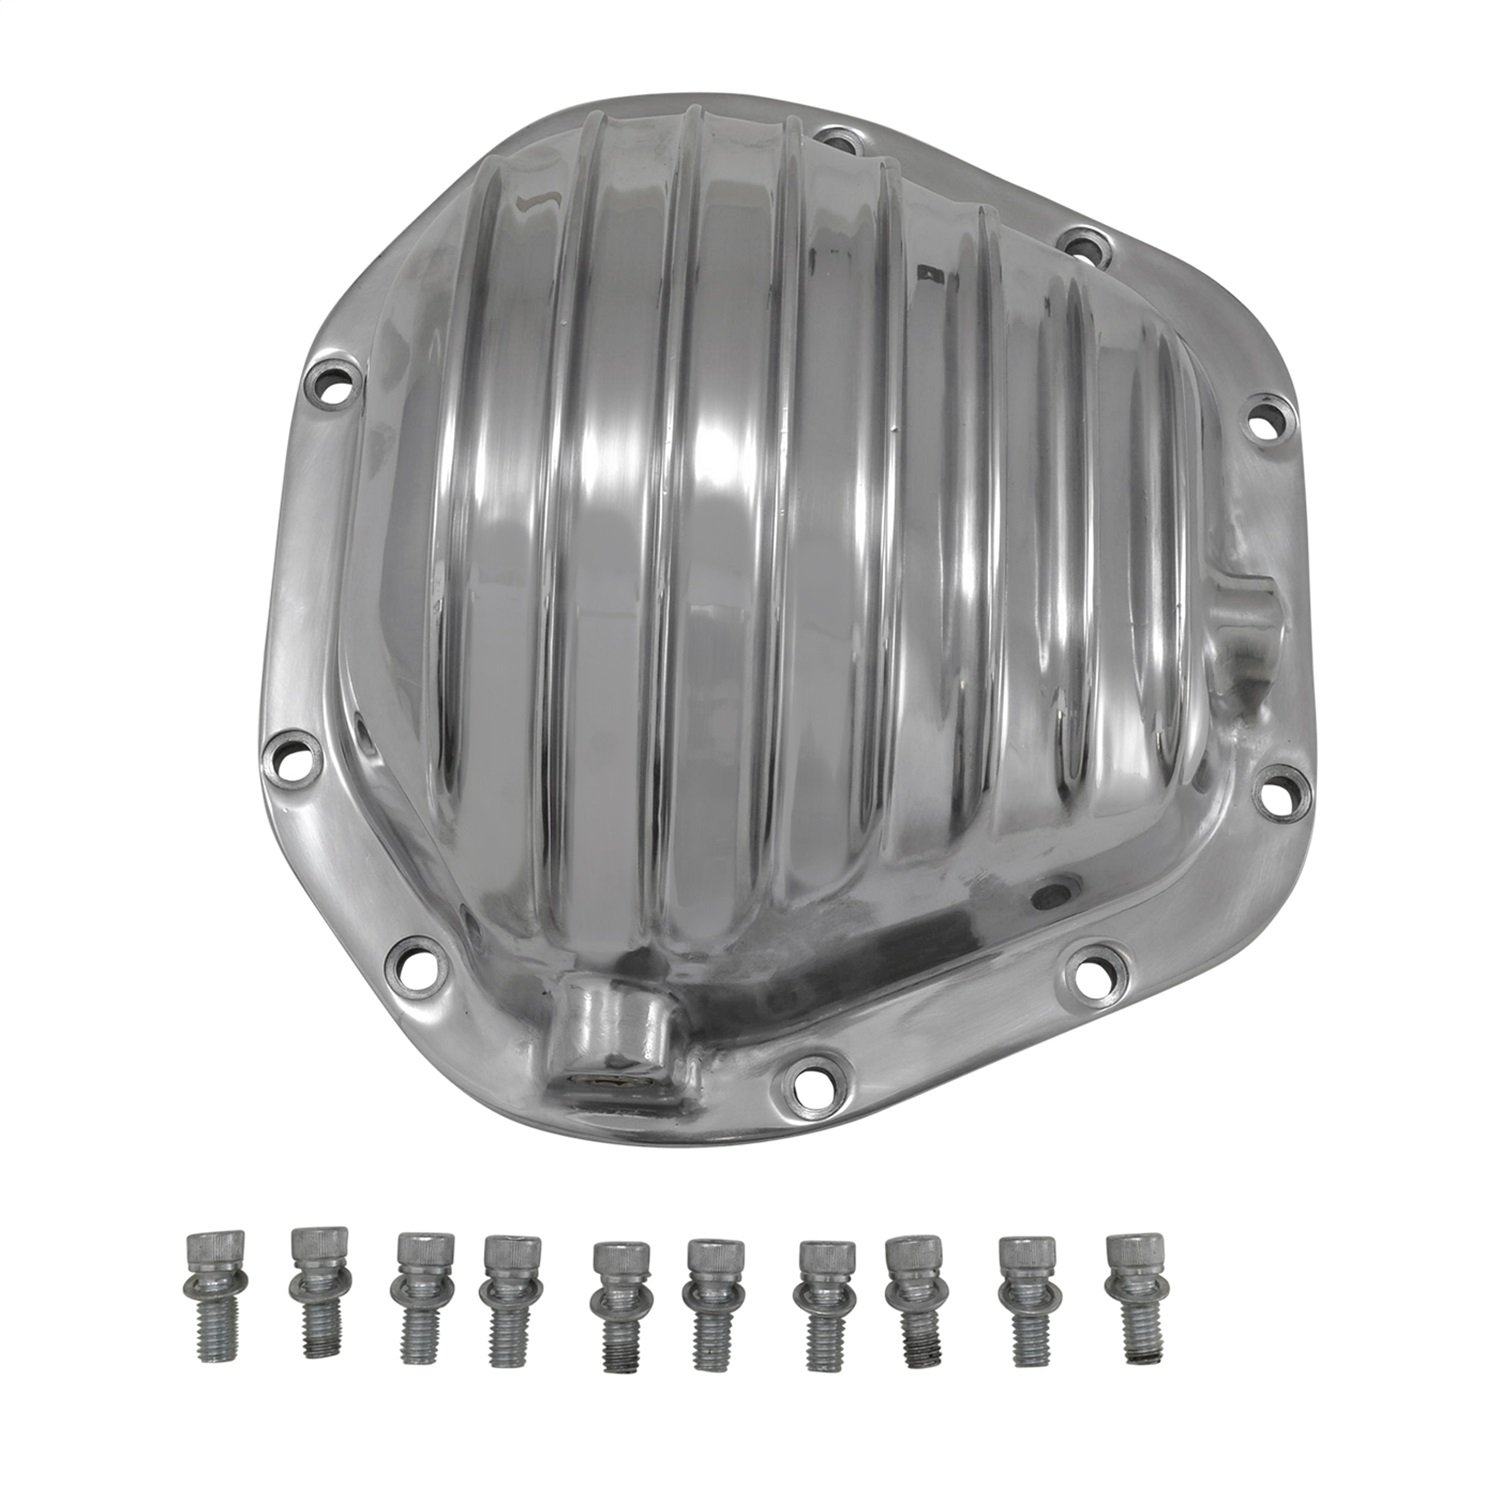 Yukon (YP C2-D60-STD) Polished Aluminum Replacement Cover for Dana 60 Differential